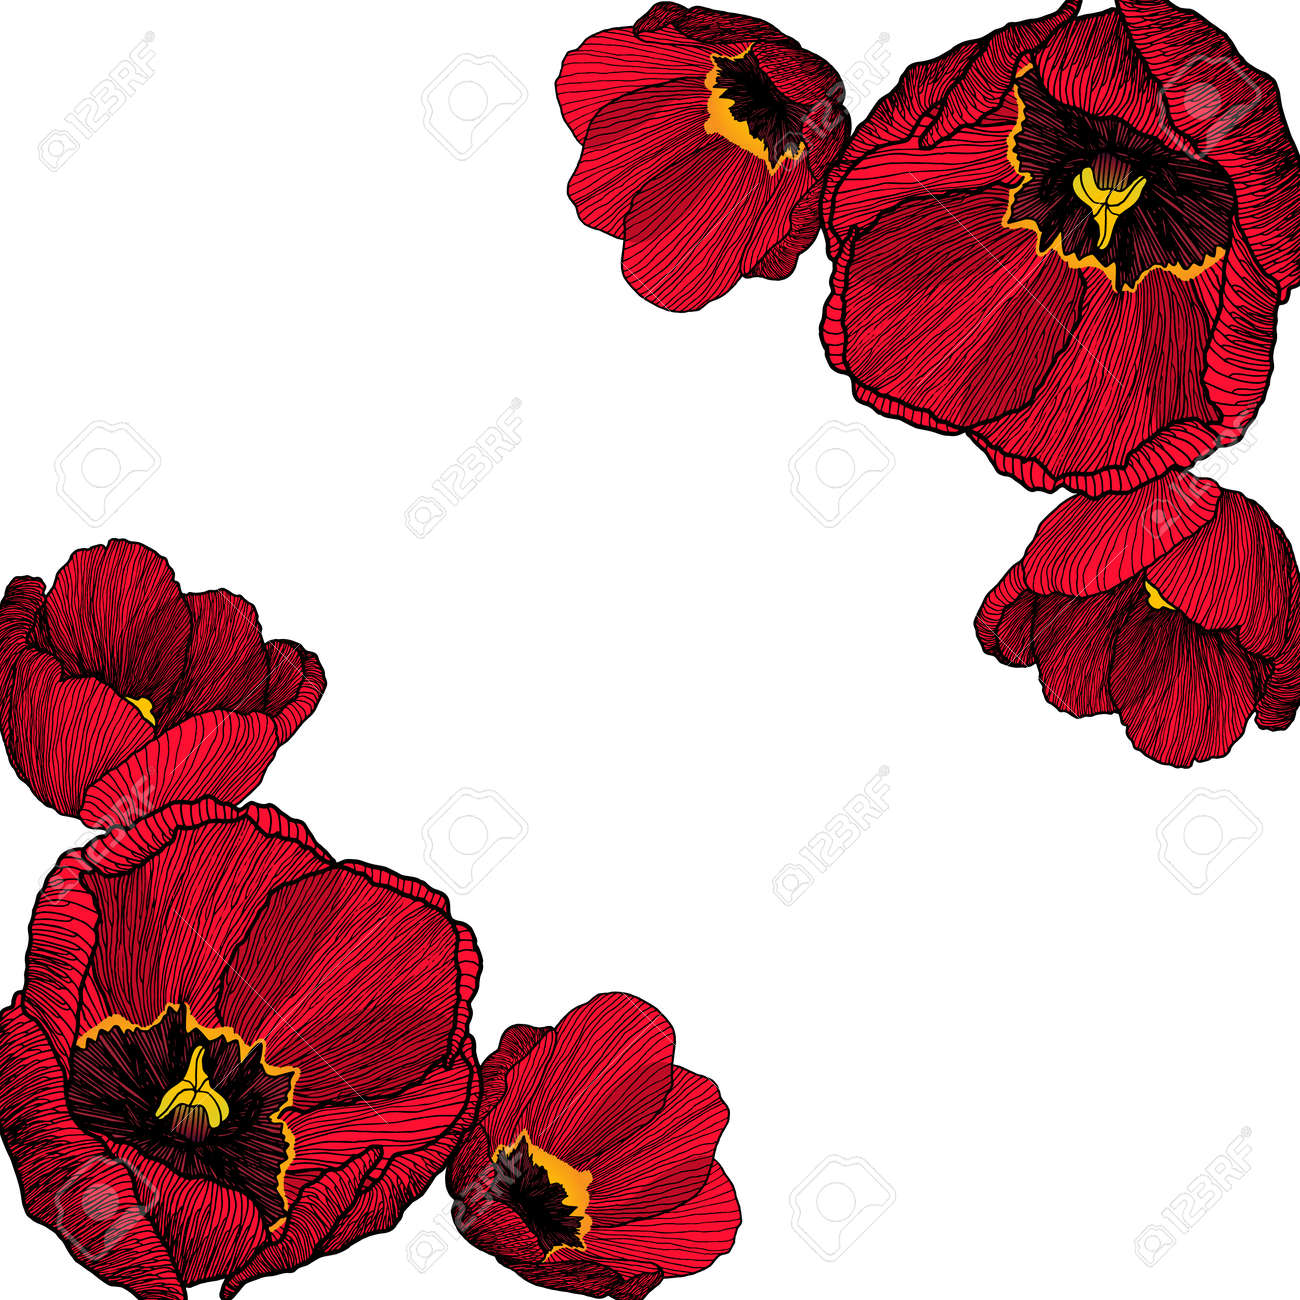 Vector frame corners with hand drawn ink graphic red tulip flowers banco de imagens vector frame corners with hand drawn ink graphic red tulip flowers in a linear style with blank place for text vintage stopboris Choice Image